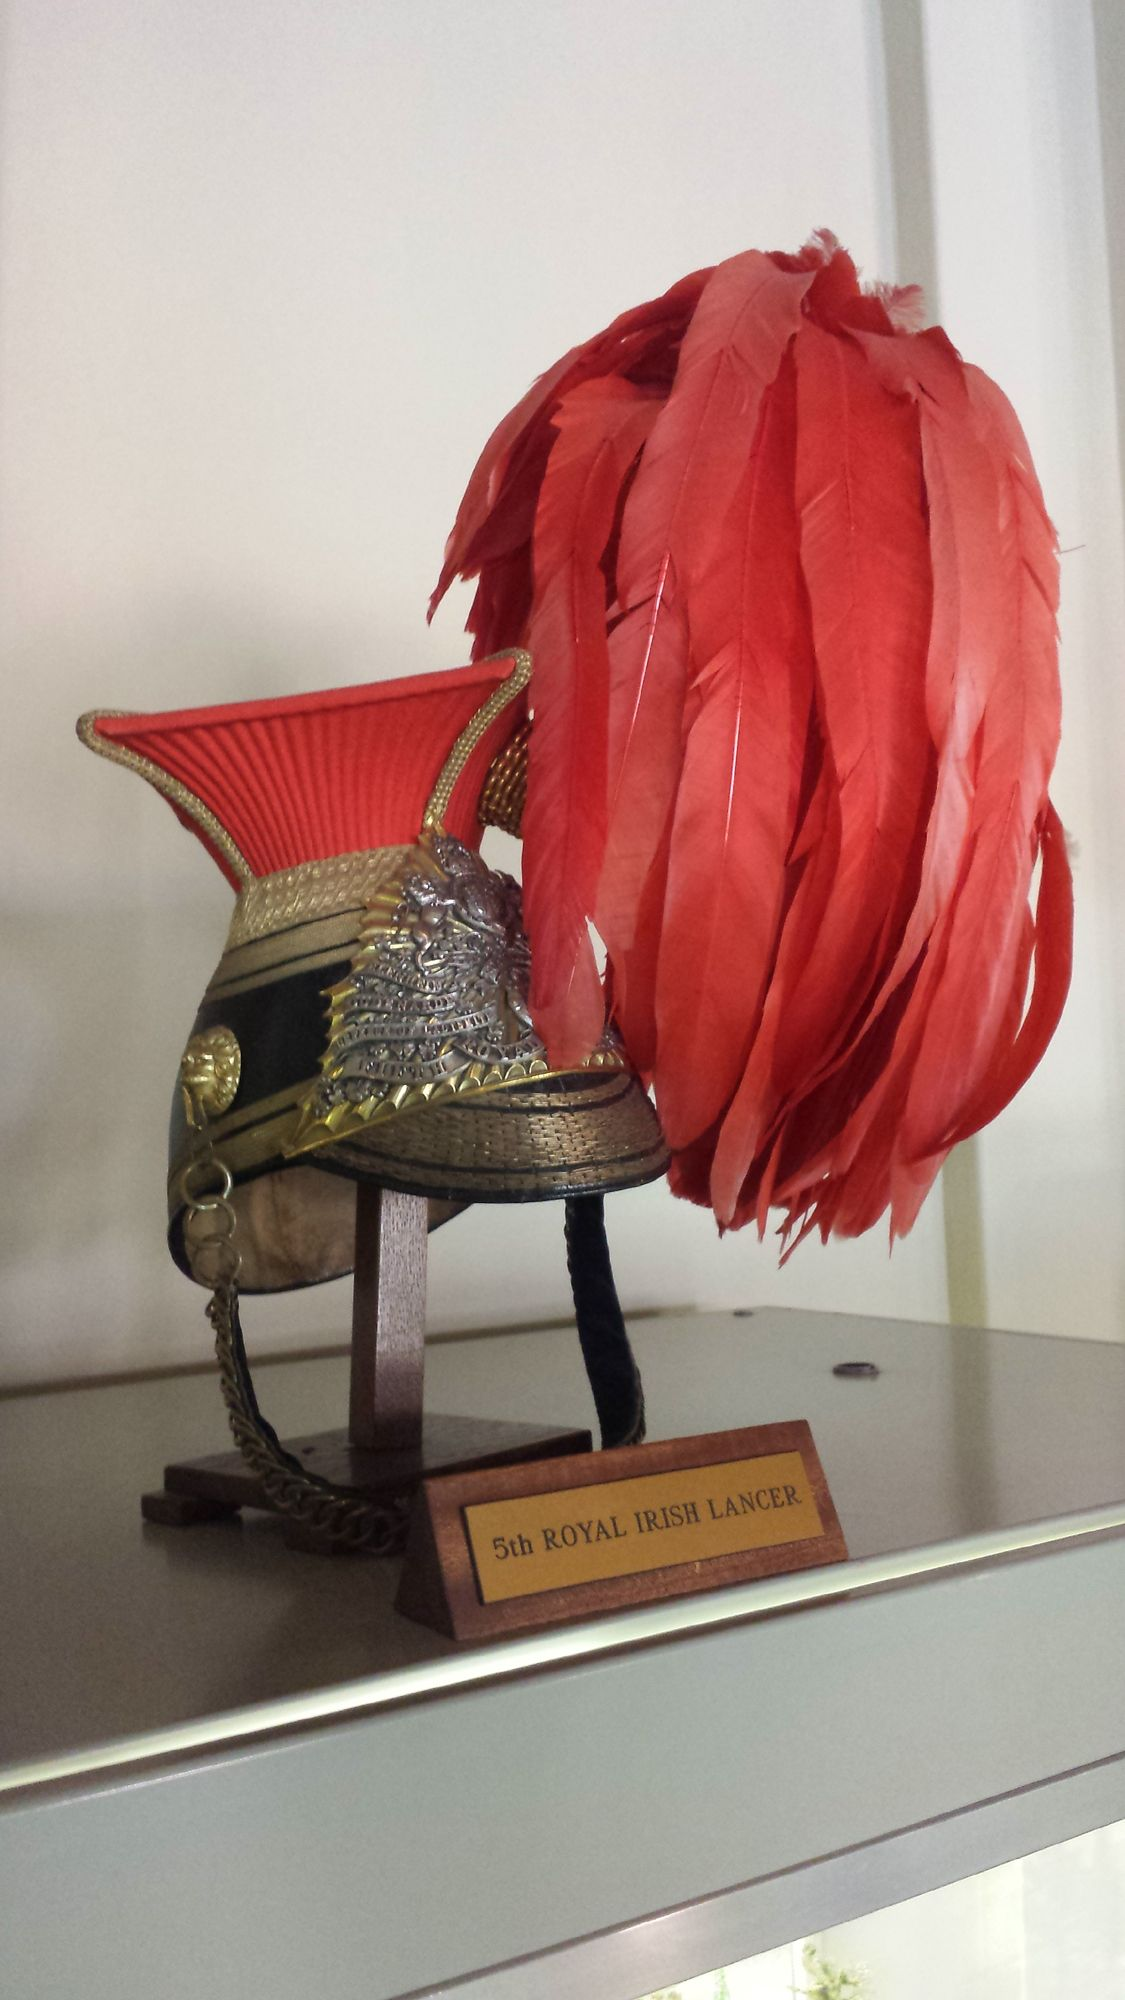 12th (Prince of Wales's) Royal Lancers czapka. NB although the sign says 5th Lancers, they wore green feathers. The 12th Lancers wore scarlet. There again, this could be a 5th Lancer helmet with 12th Lancer feathers.